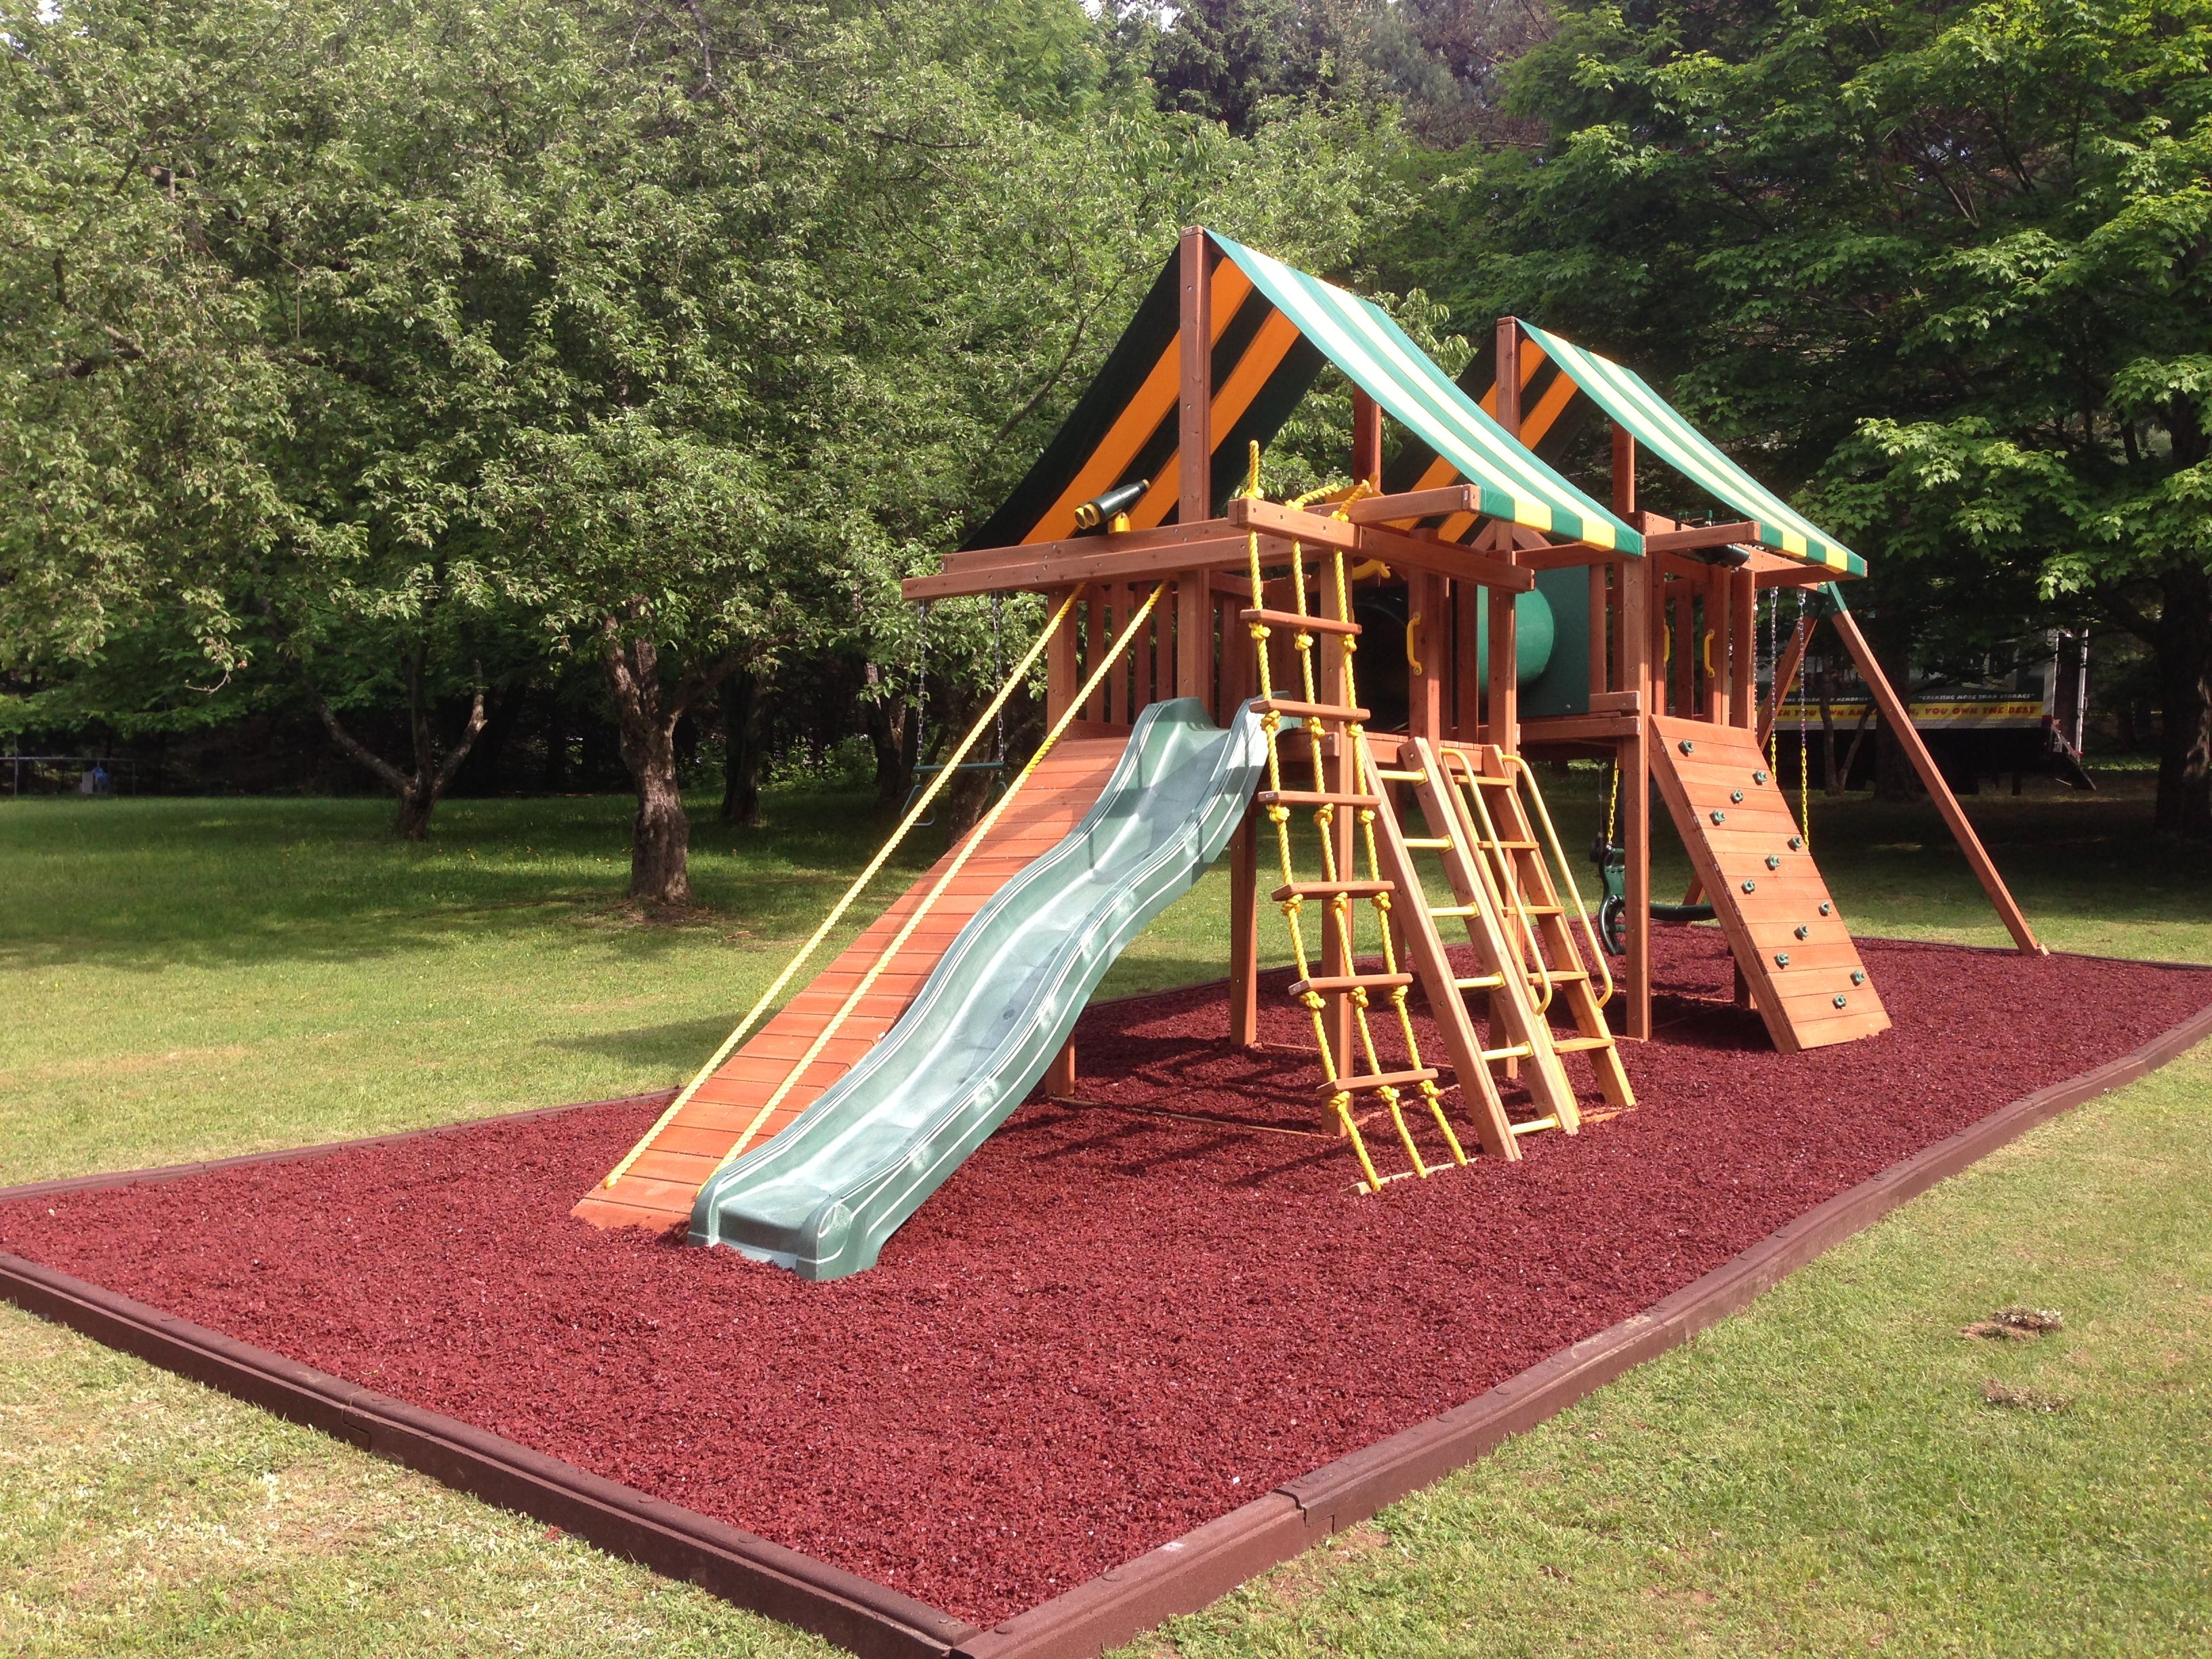 Custom Swing Set With Red Rubber Mulch Playgrounds Rubber Mulch